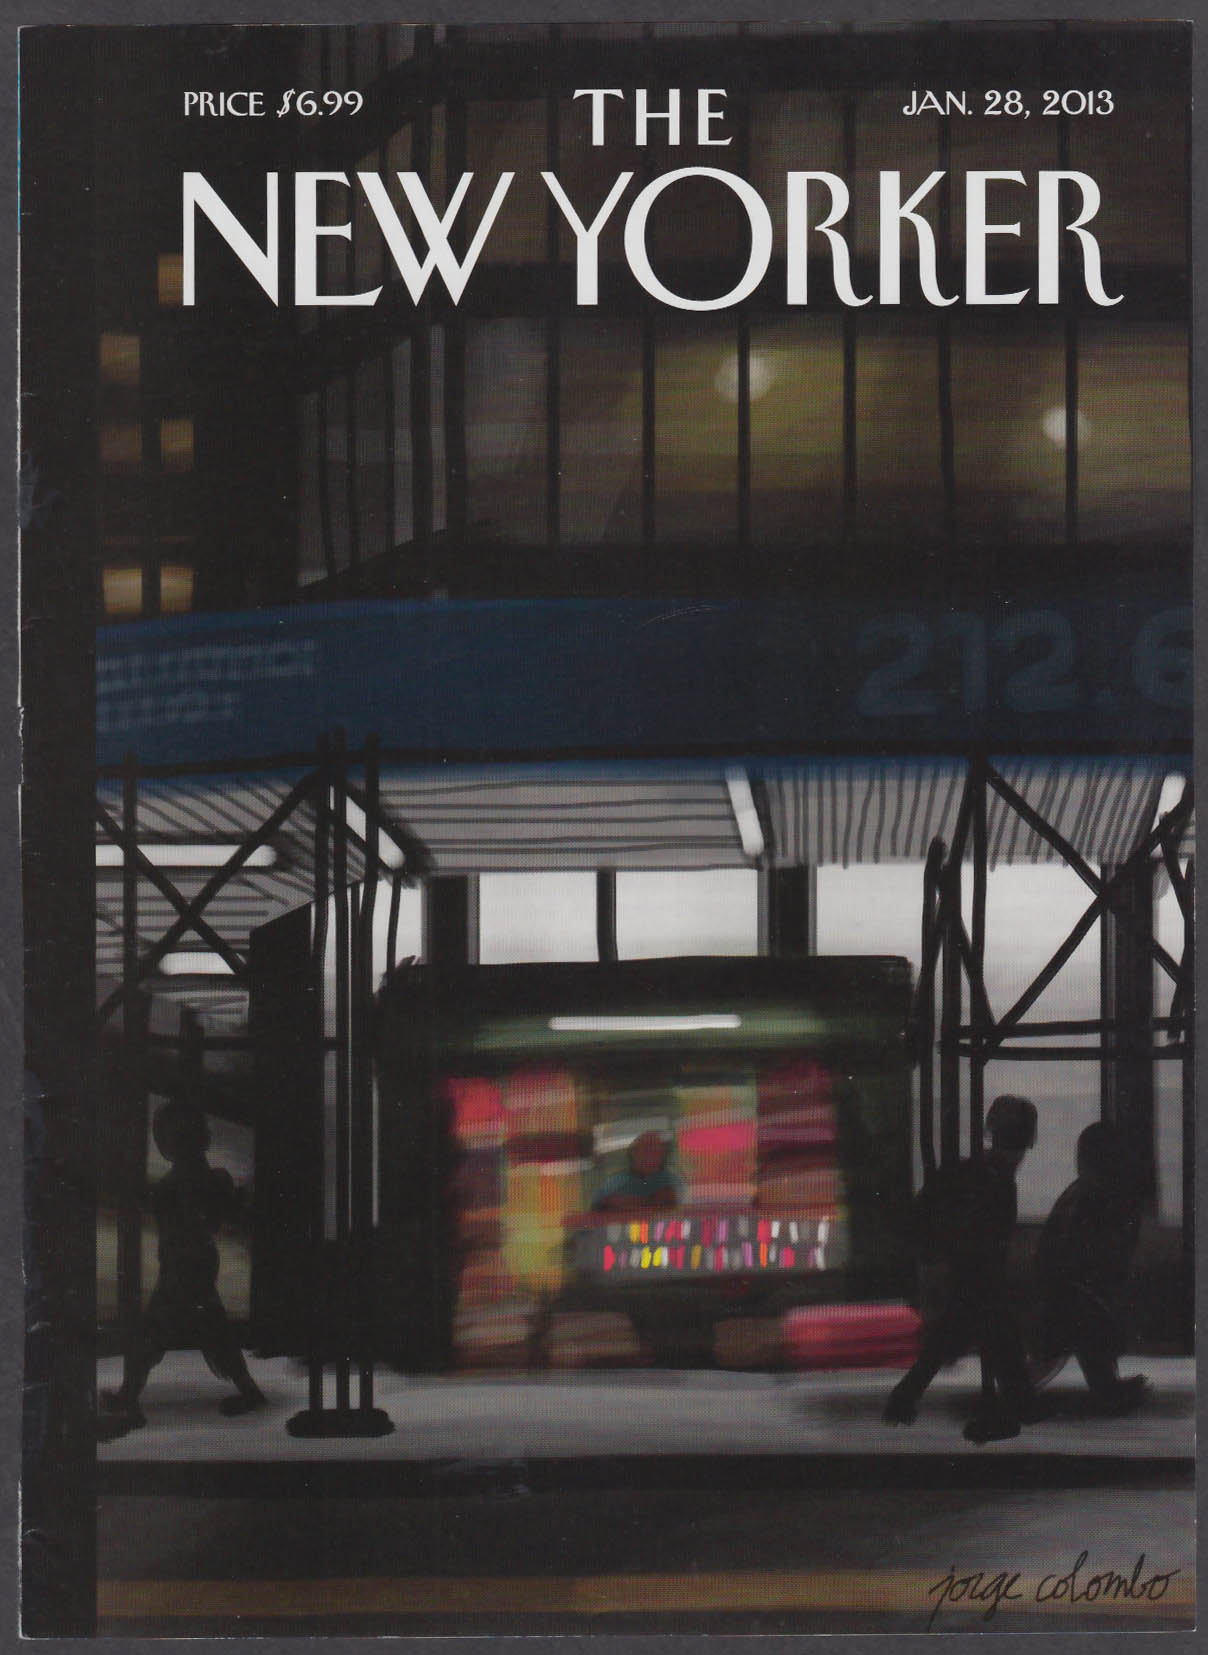 New Yorker cover 1/28 2013 Colombo: nighttime newsstand under construction eave